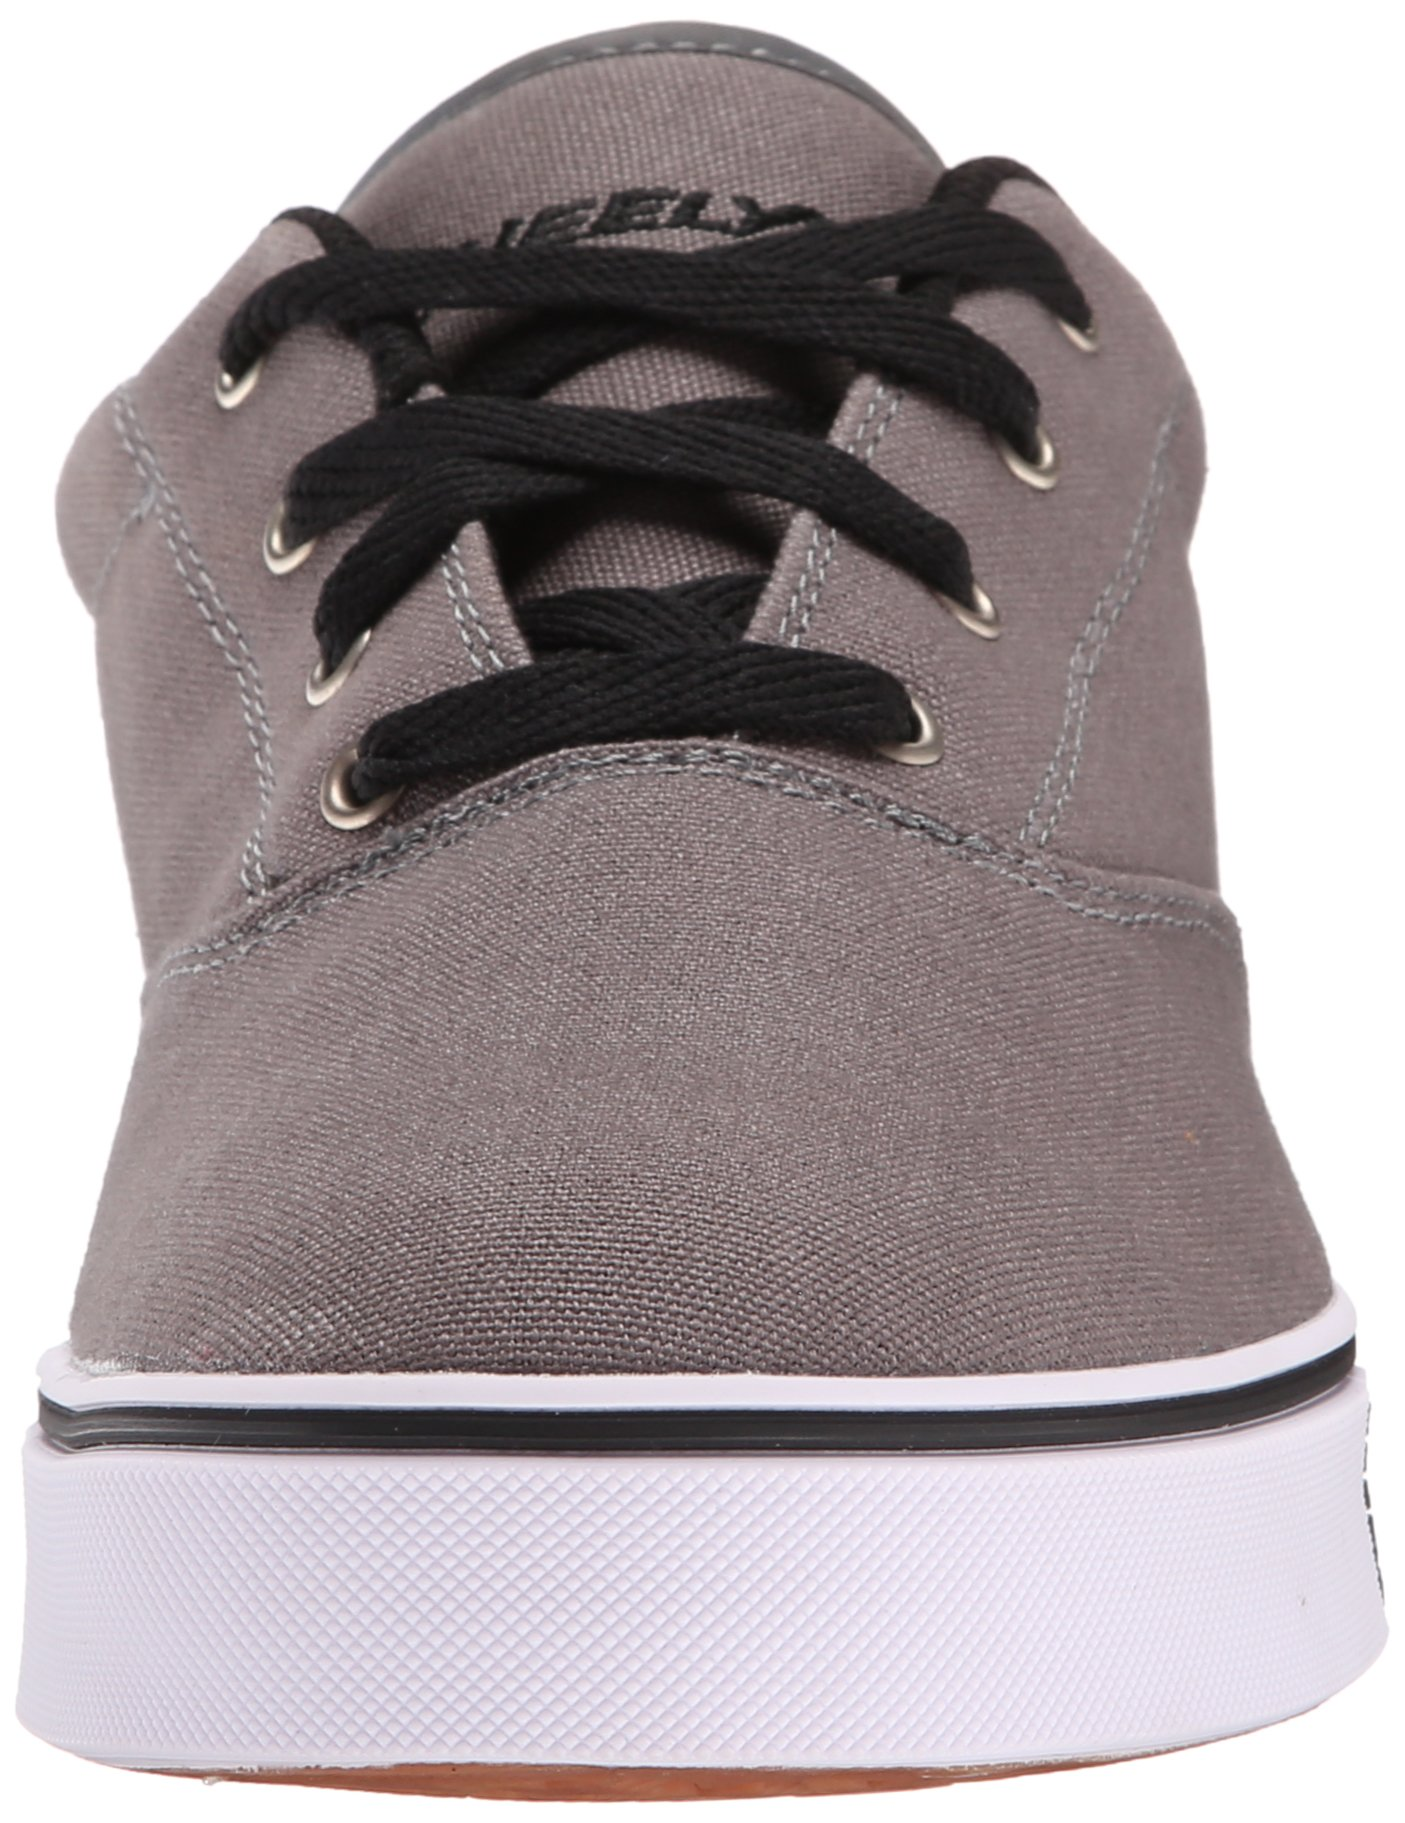 Heelys Men's Launch Fashion Sneaker Grey 10 M US by Heelys (Image #4)